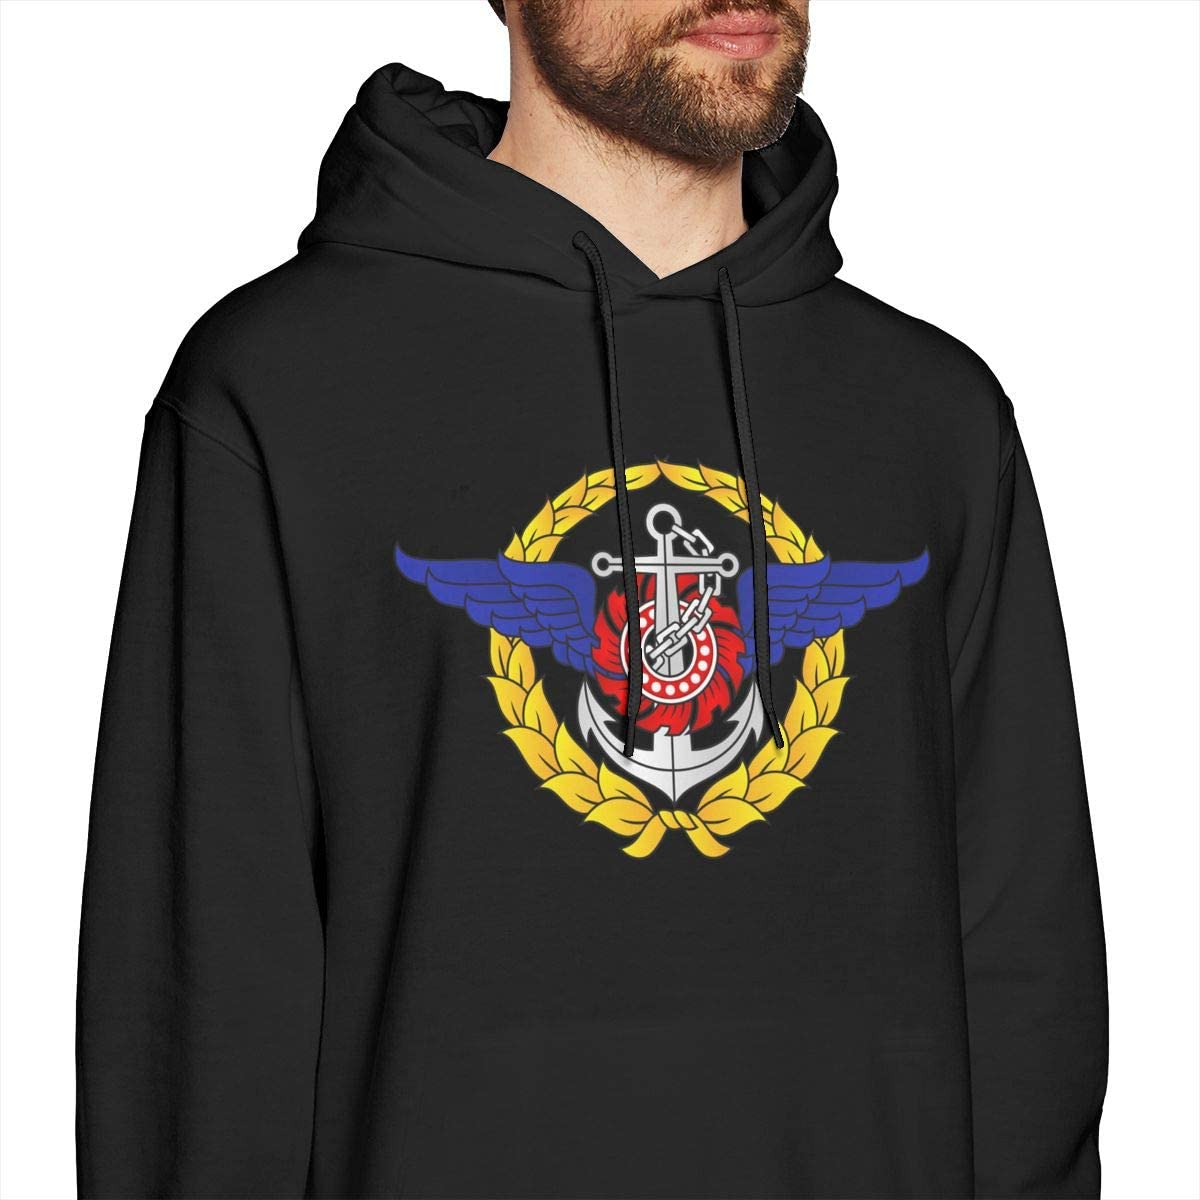 Royal Thai Armed Forces Mens Pullover Hooded Sweatshirt Cozy Sport Outwear Black